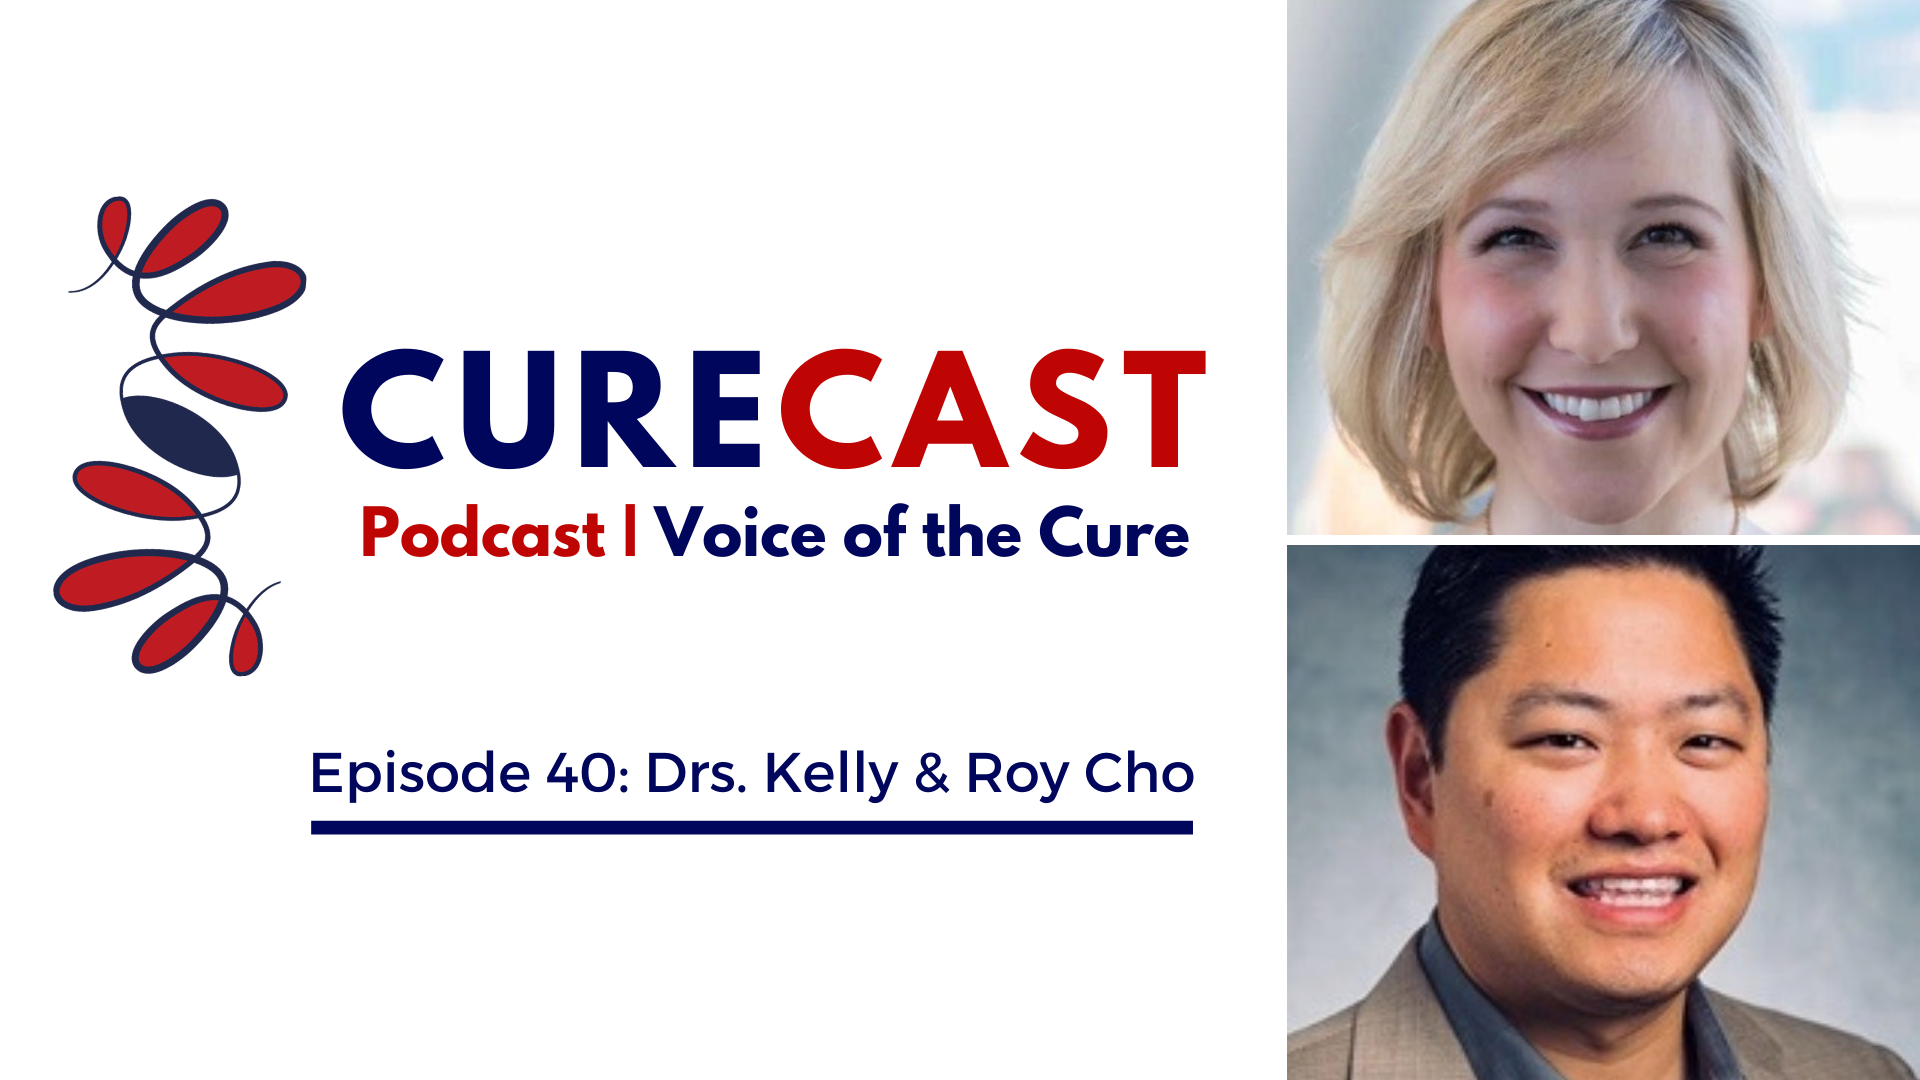 CureCast Episode 40: Kelly & Roy Cho on Covid-19 & Spinal Cord Injury